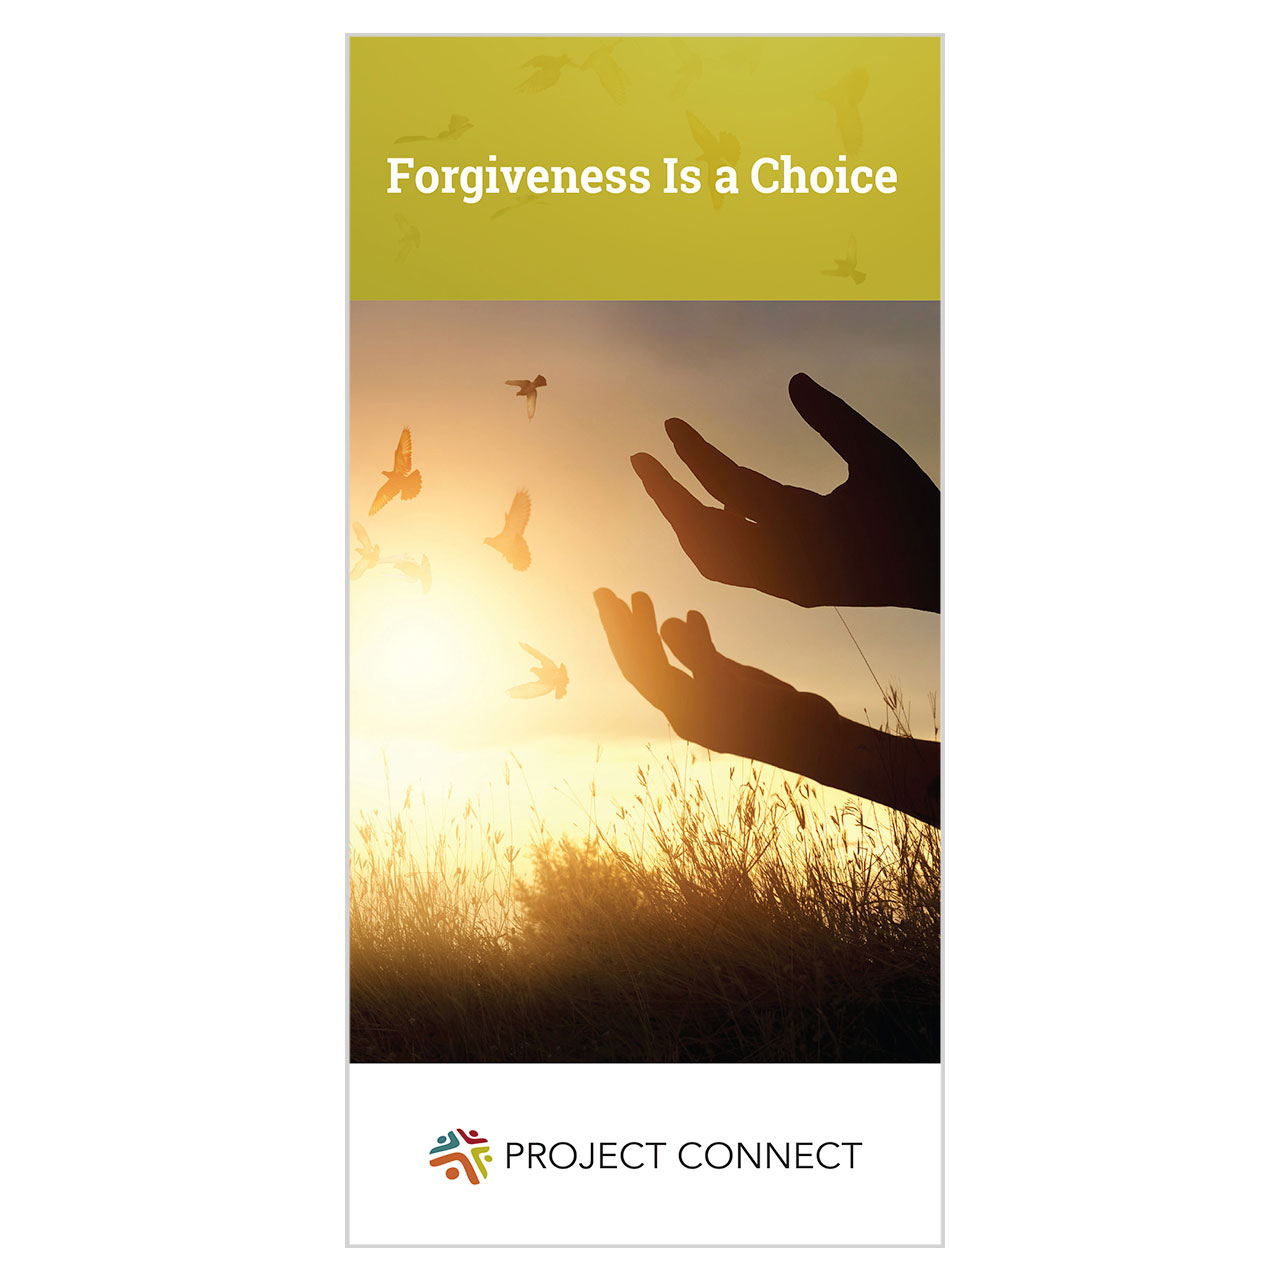 """Forgiveness is a Choice"" booklet cover"